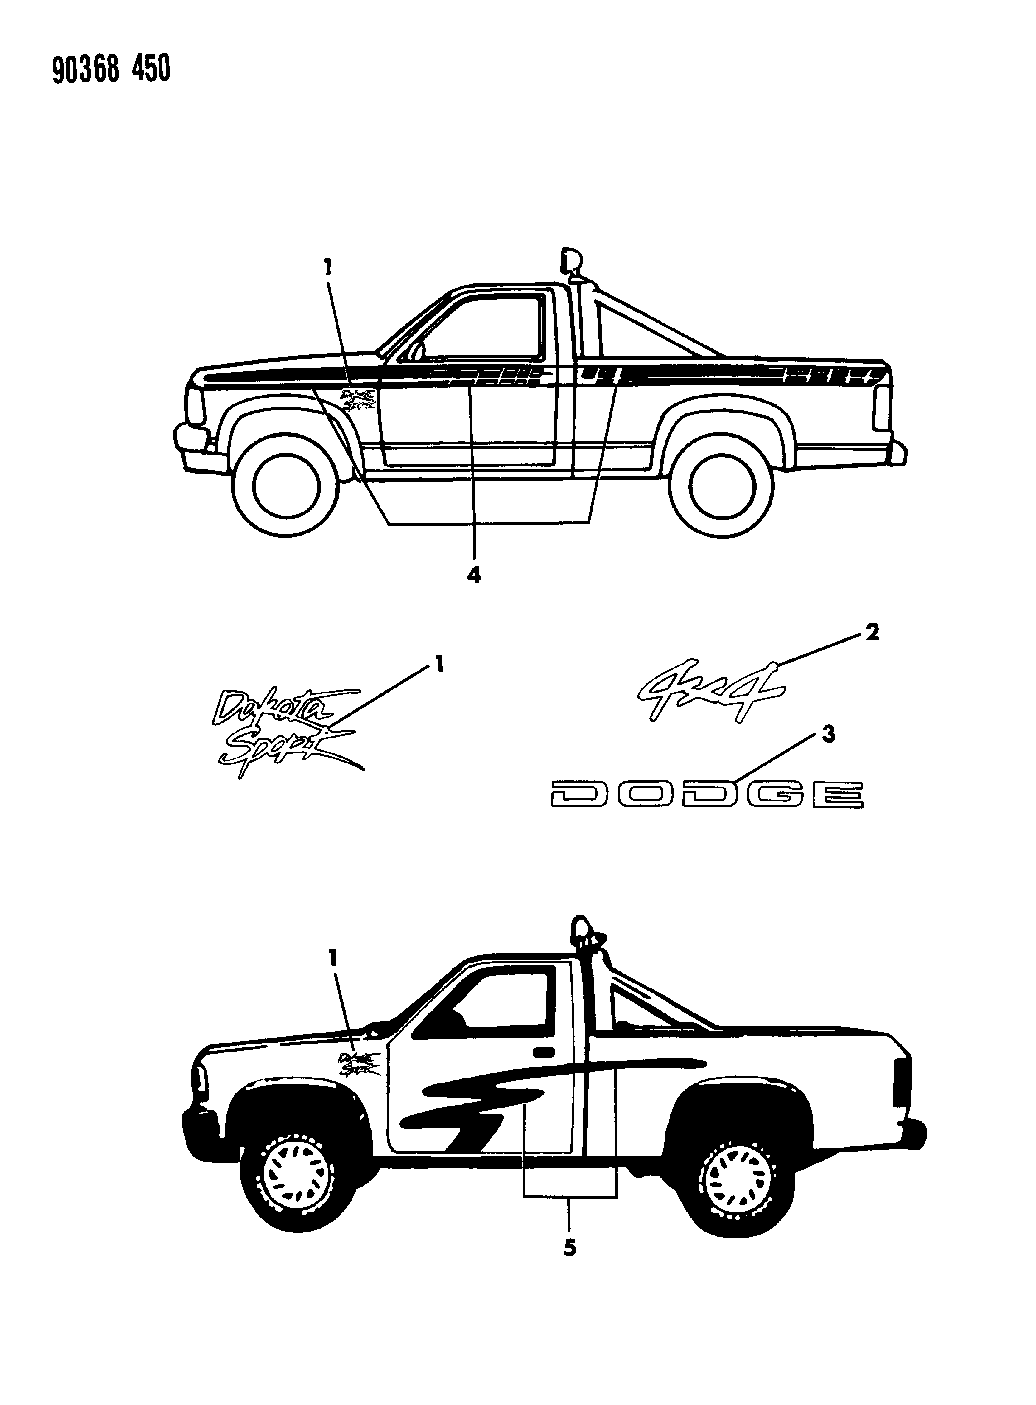 Resource T D Amp S L Amp R Ab C Ee Ccbe F Ccd E Ee Bcd B B B Dc E on 1993 Dodge Dakota Decals